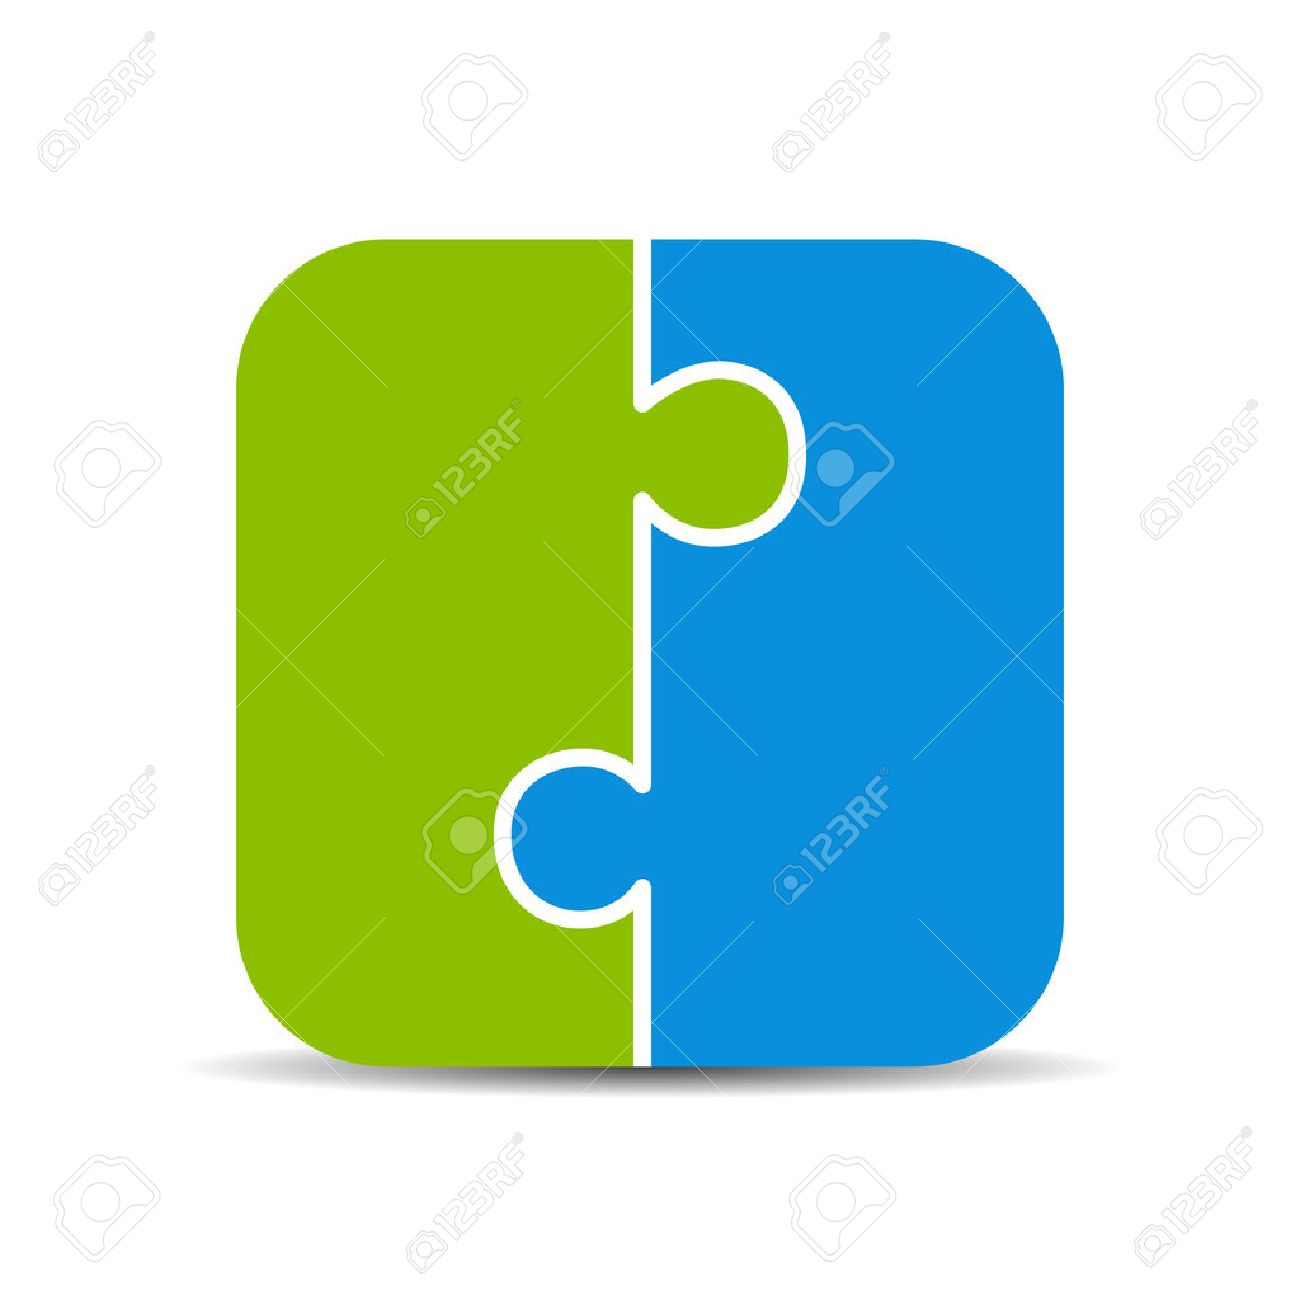 Two piece puzzle diagram royalty free cliparts vetores e imagens two piece puzzle diagram ccuart Choice Image